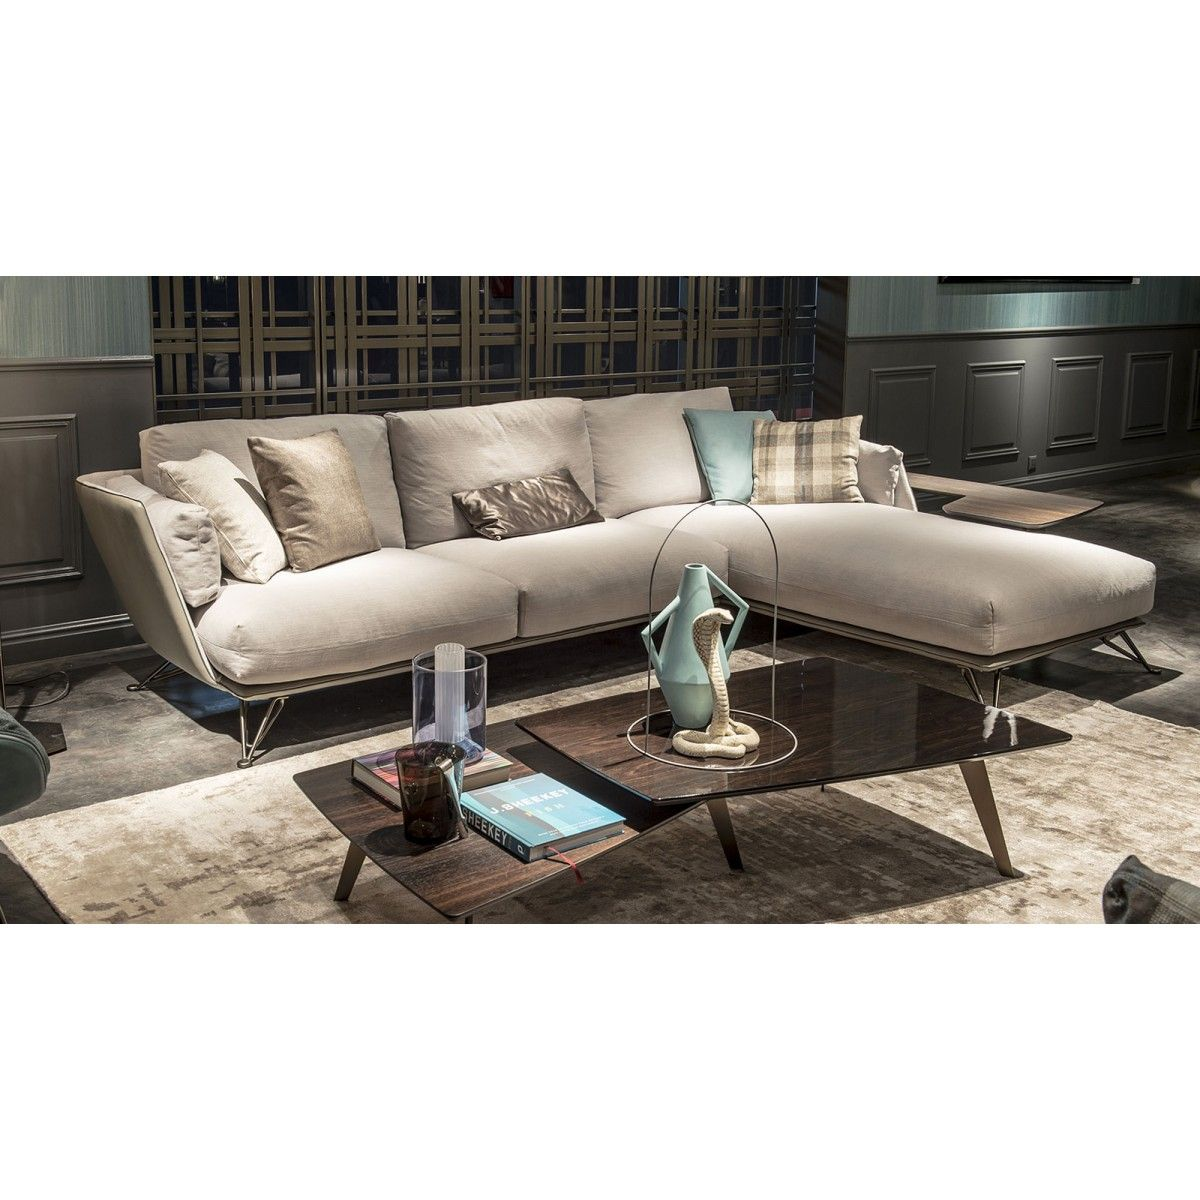 Morrison A Sofa With Chaise From Arketipo S New Modular Range Solid Structure Contains